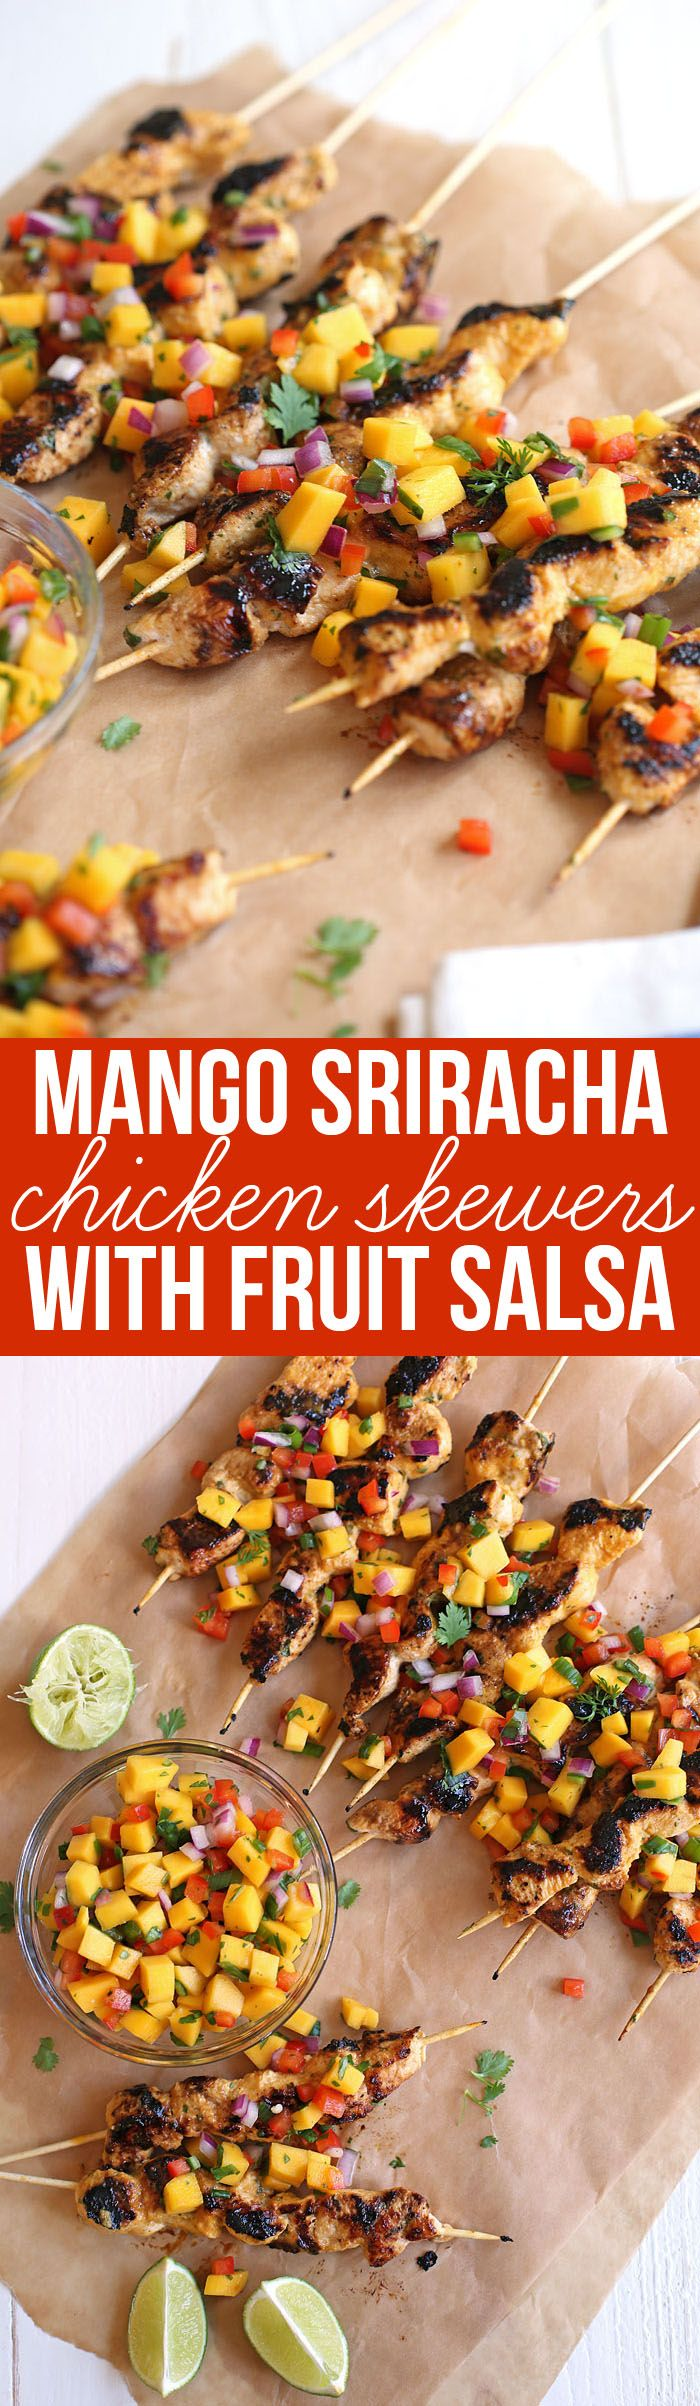 This recipe for Mango Sriracha Chicken Skewers are deliciously healthy and the perfect balance of sweet/spicy topped with a colorful mango salsa! www.eat-yourself-skinny.com